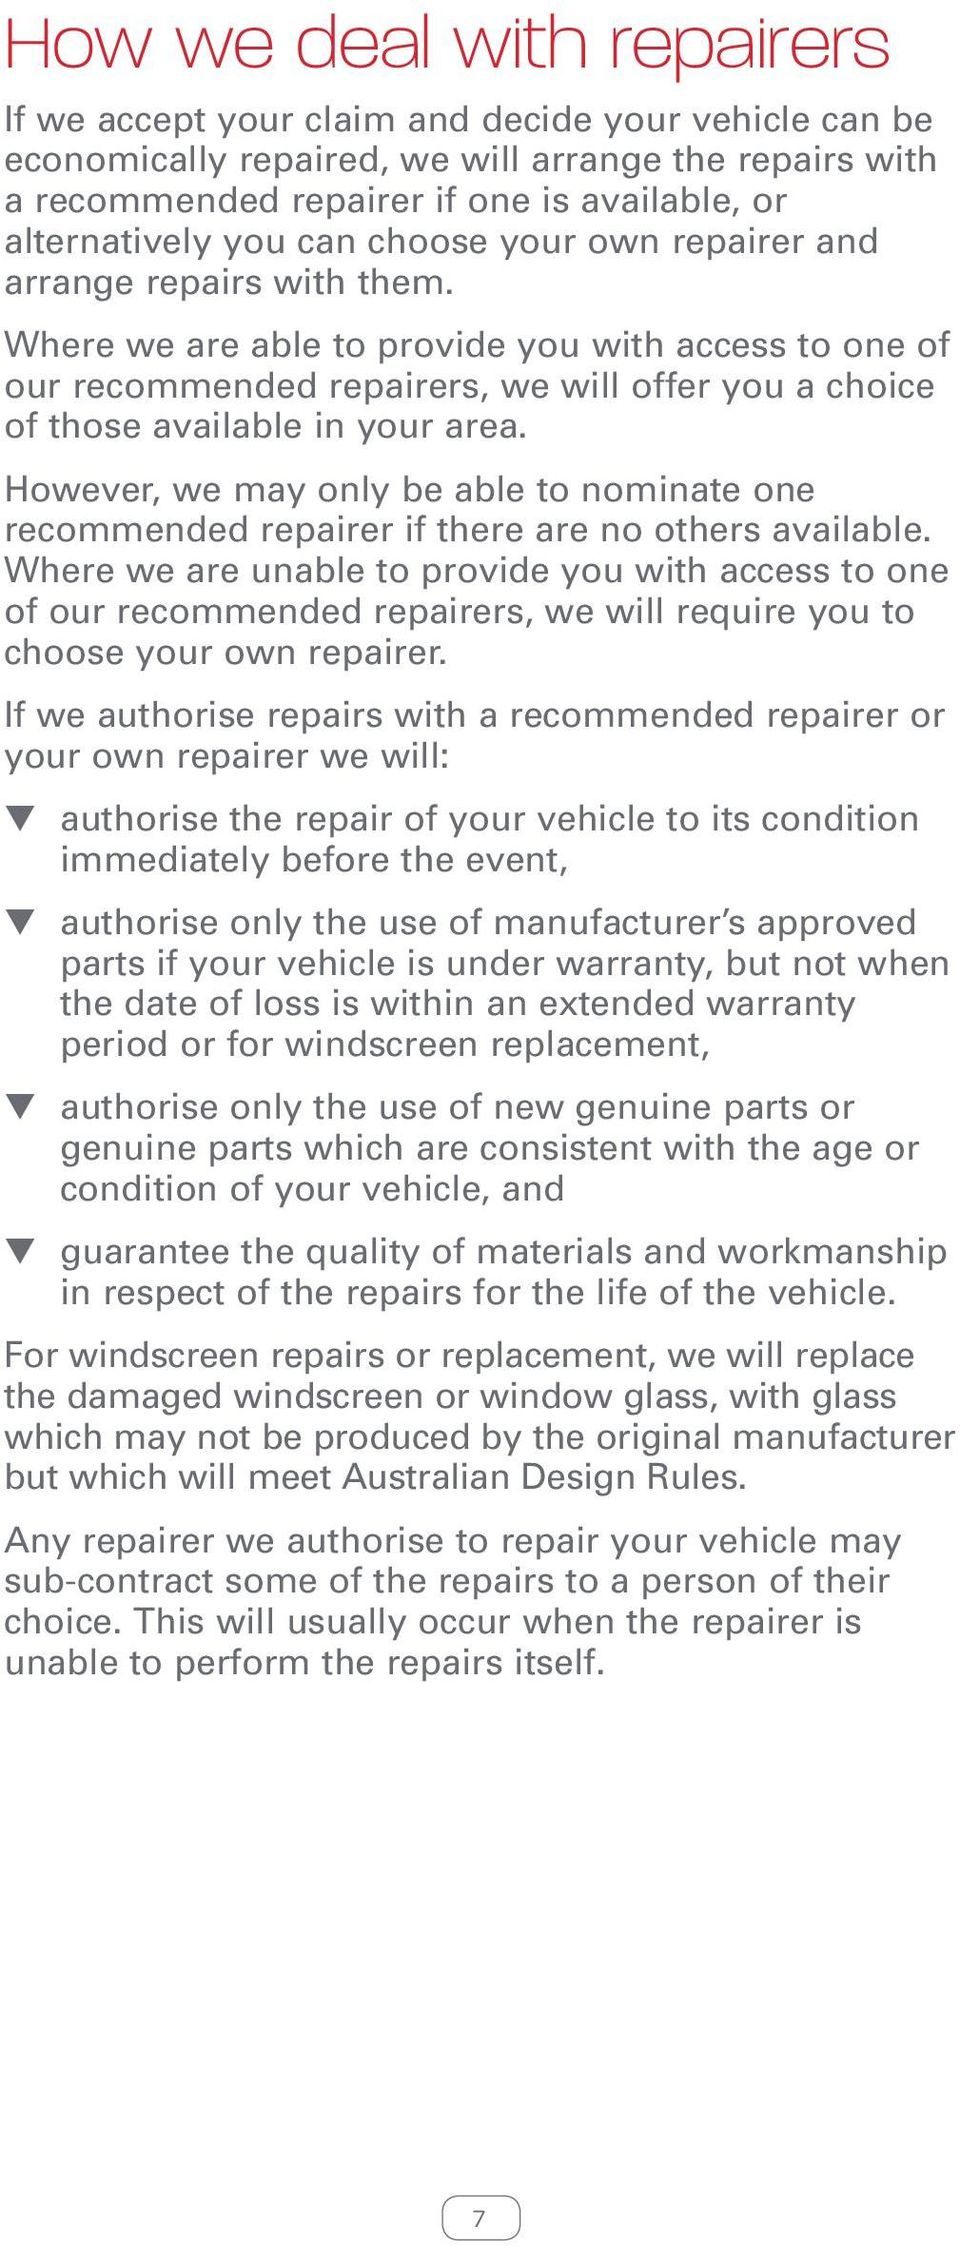 Where we are able to provide you with access to one of our recommended repairers, we will offer you a choice of those available in your area.